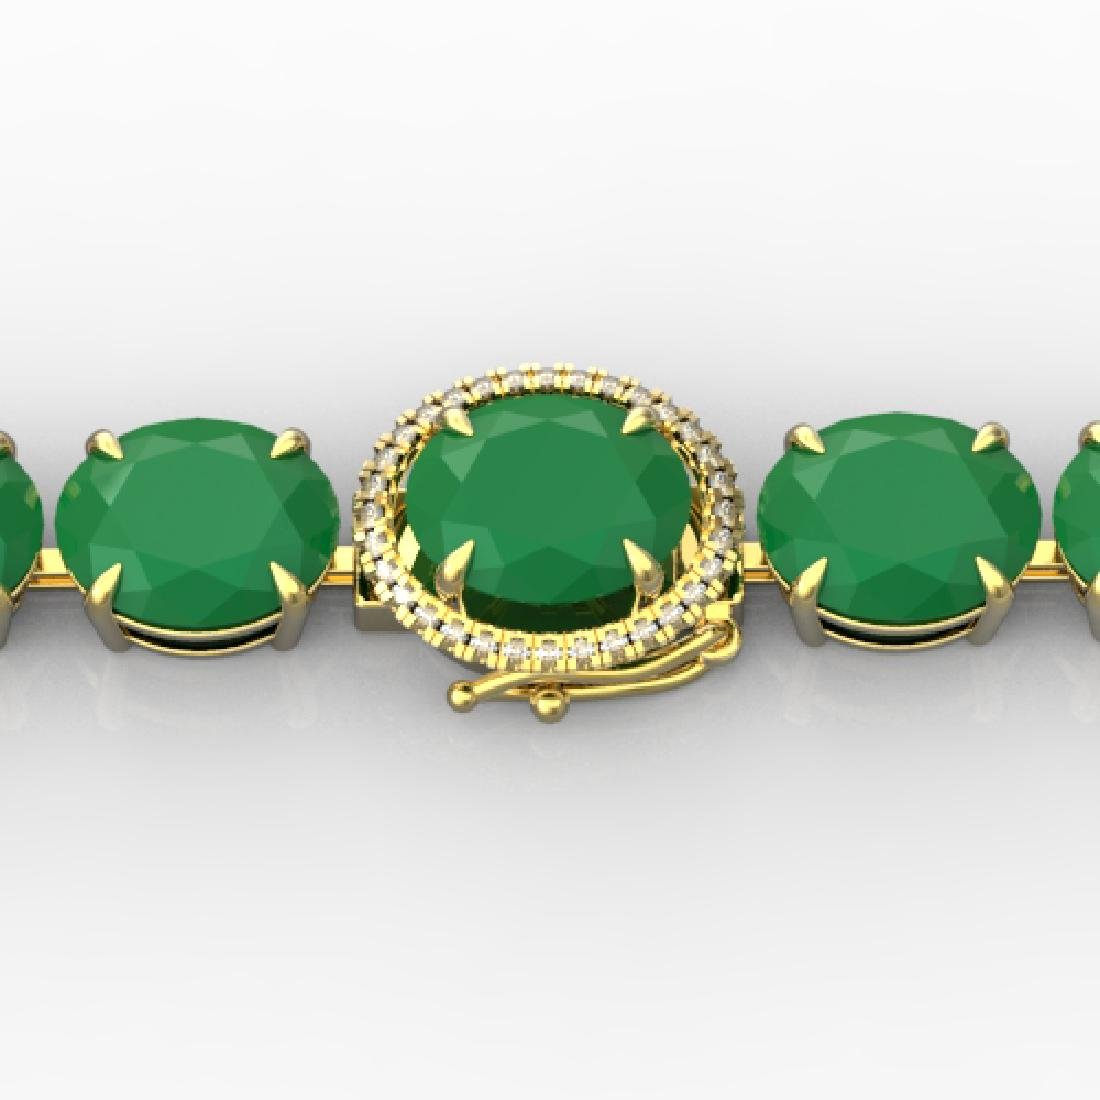 76 CTW Emerald & Micro Pave VS/SI Diamond Halo Bracelet